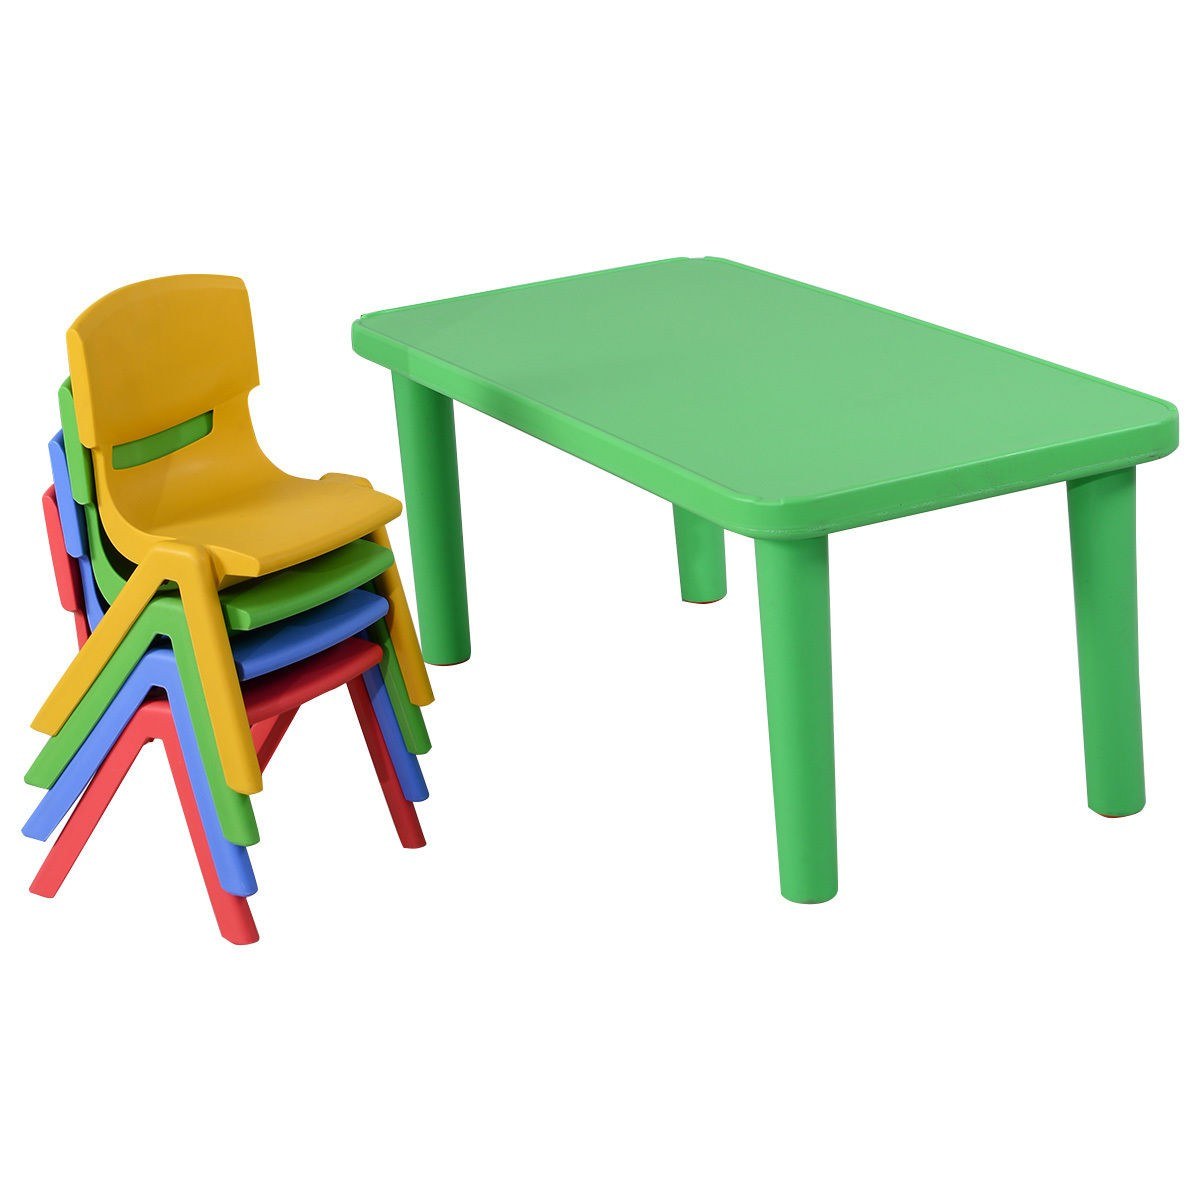 Fun kids plastic table and 4 chairs set colorful play school home furniture ebay Plastic home furniture